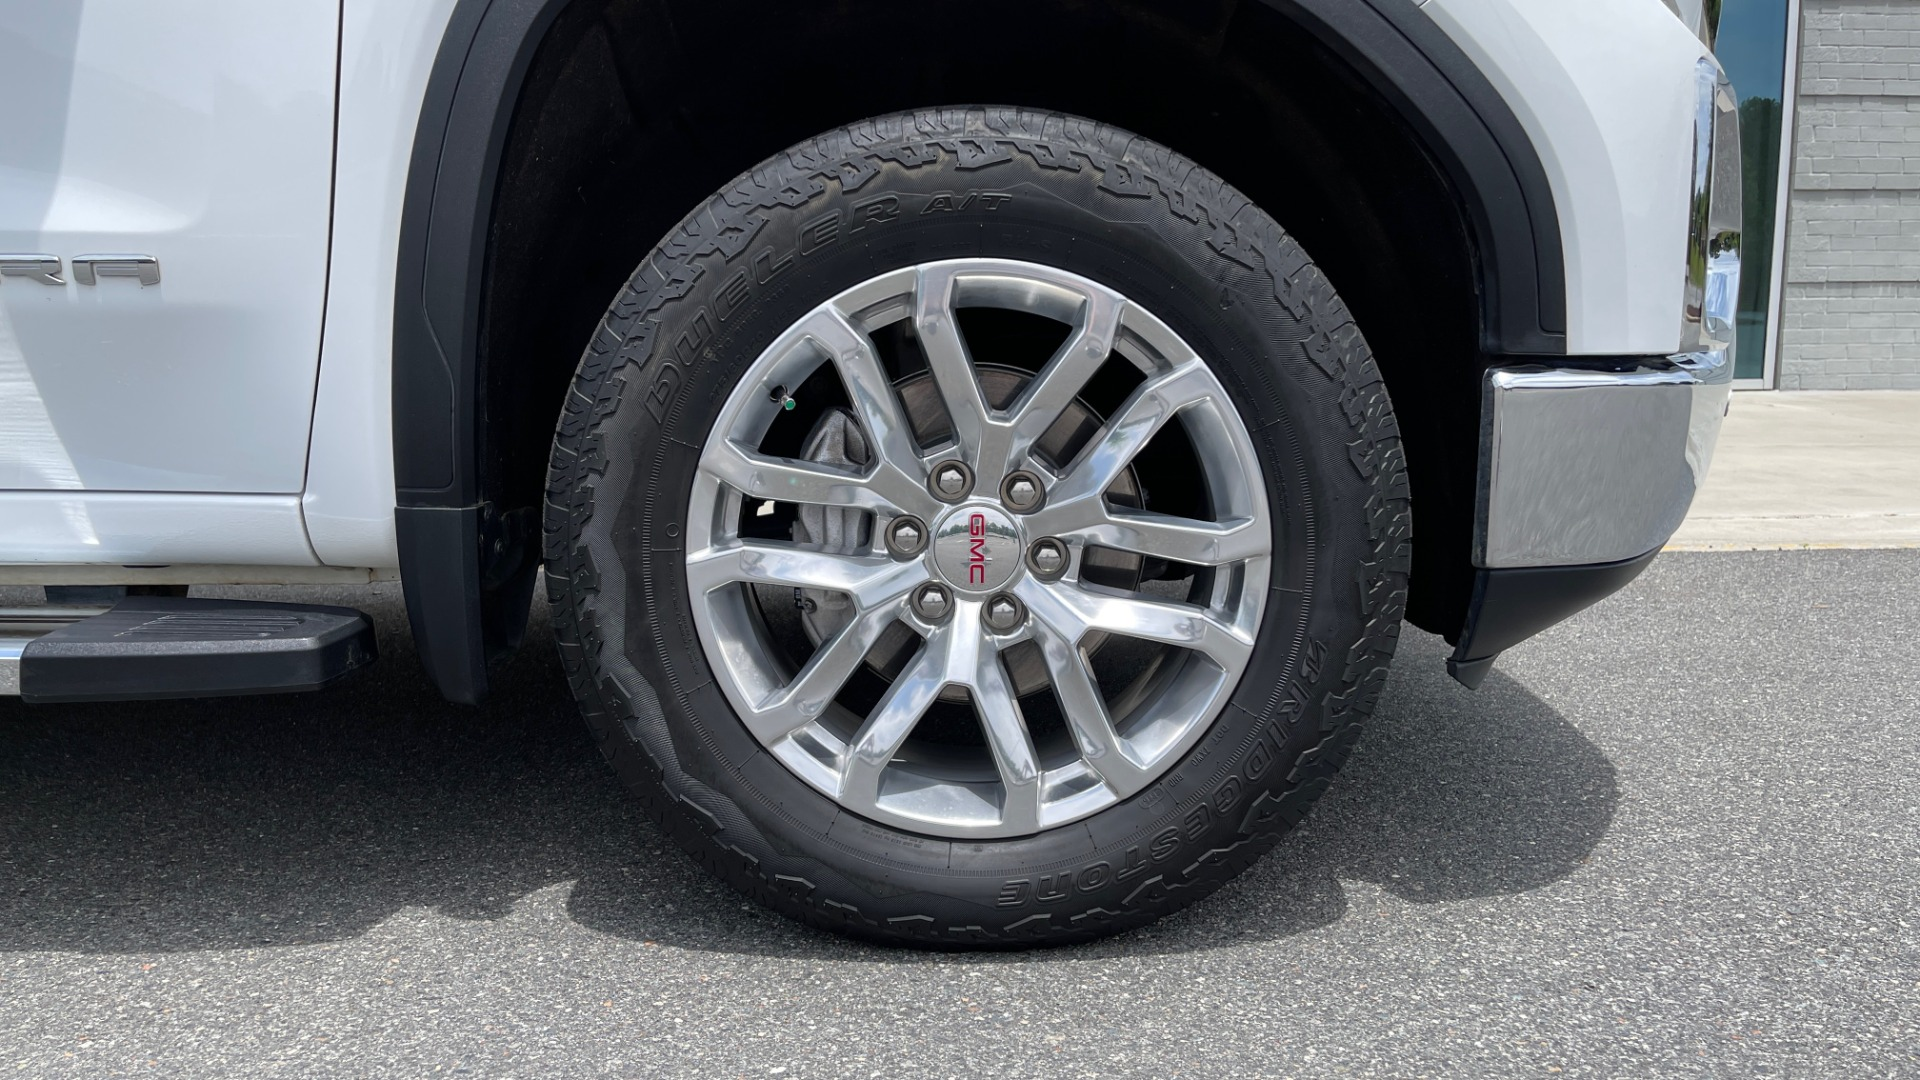 Used 2019 GMC SIERRA 1500 SLT 4X4 CREWCAB / 5.3L V8 / 8-SPD AUTO / NAV / BOSE / REARVIEW for sale $49,999 at Formula Imports in Charlotte NC 28227 83